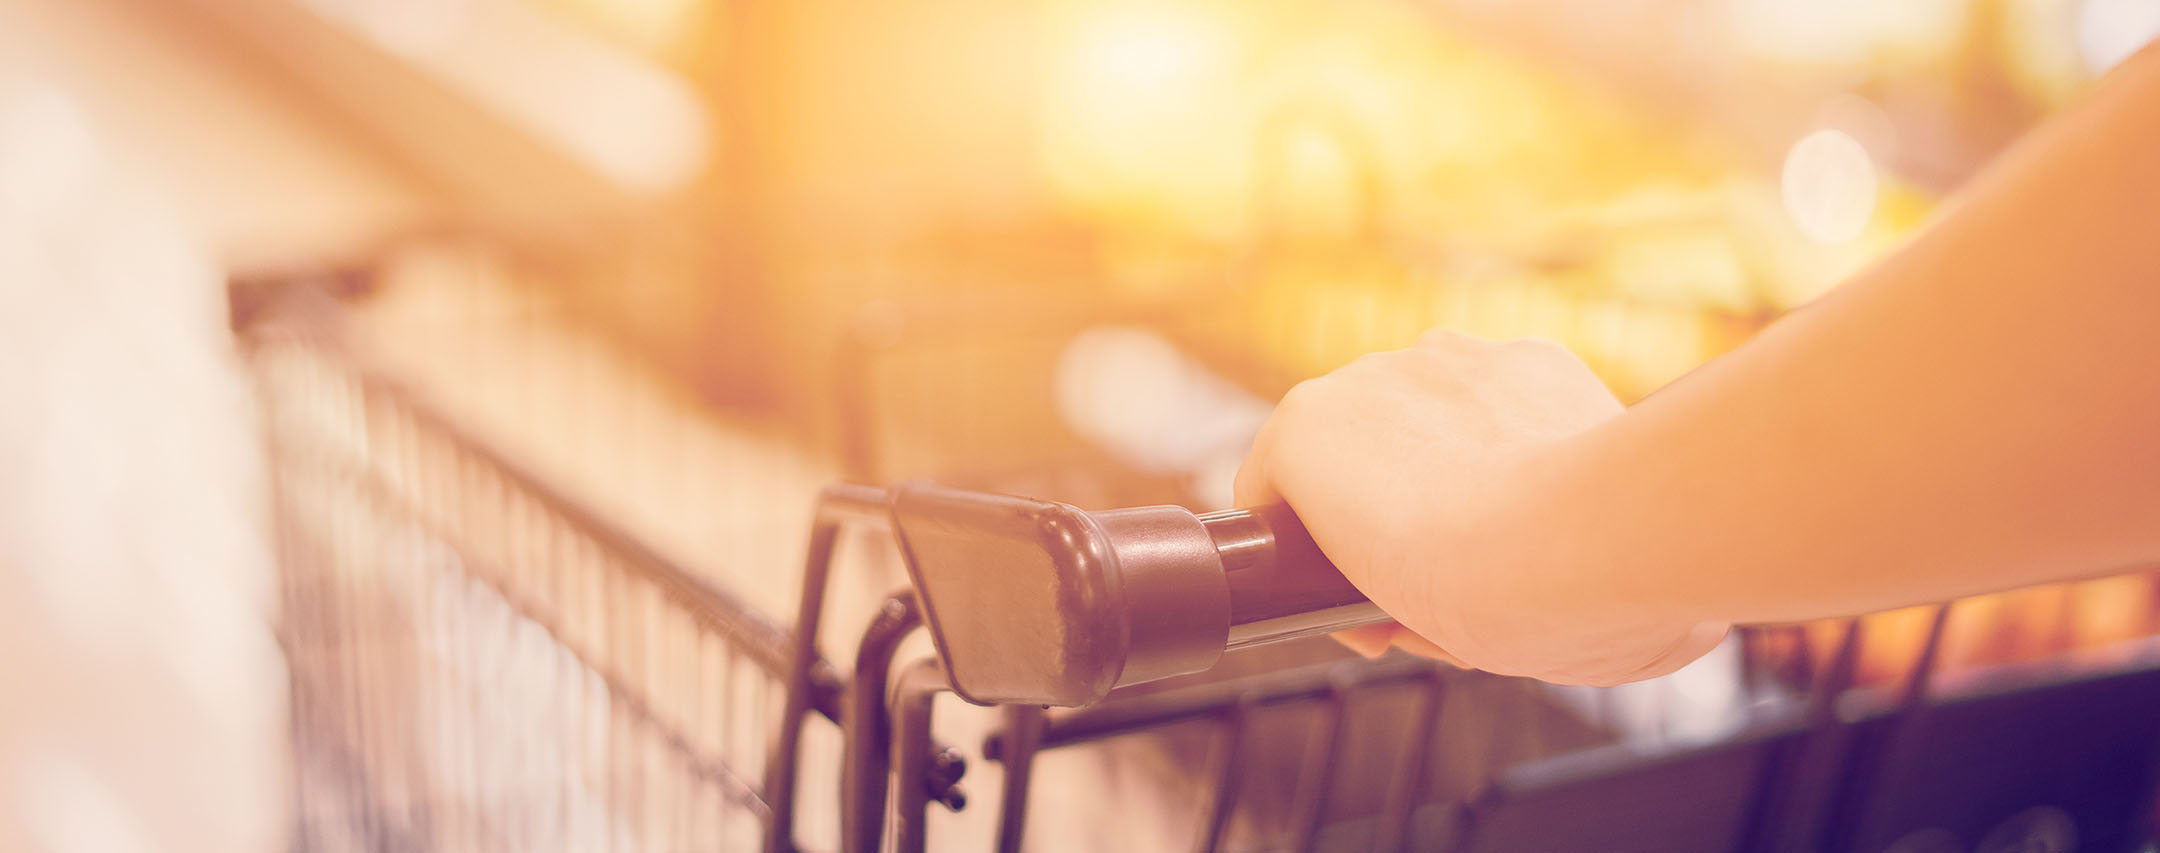 close up of woman pushing a shopping cart